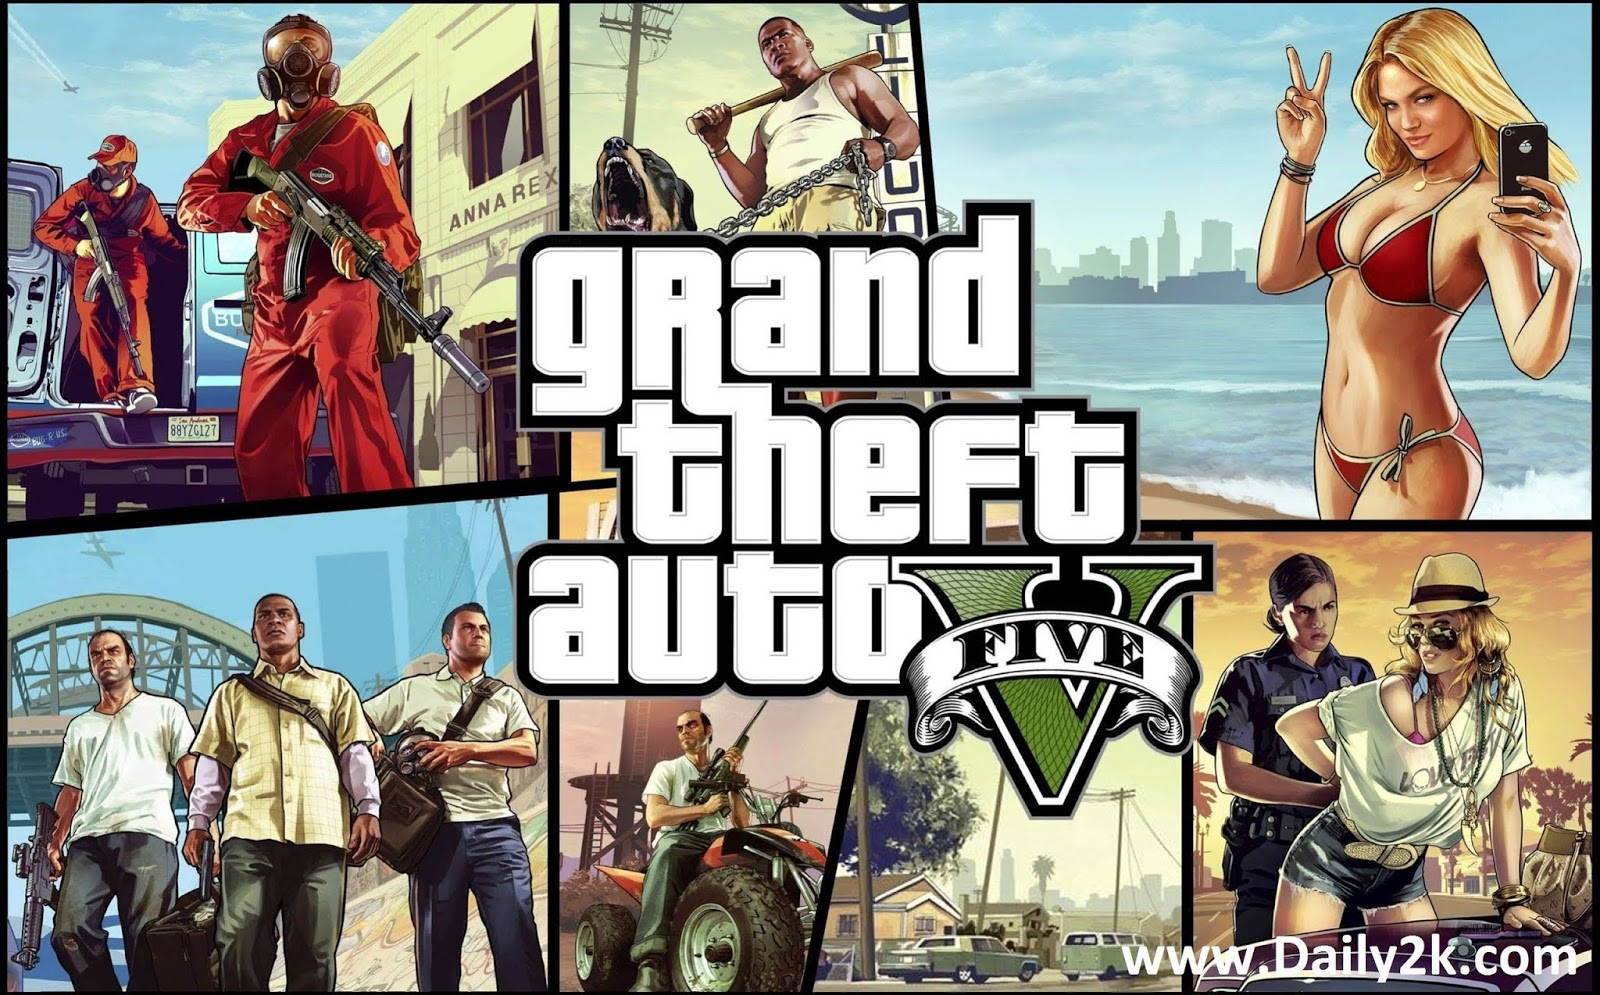 Grant Theft Auto 5 or GTA 5 Free Download